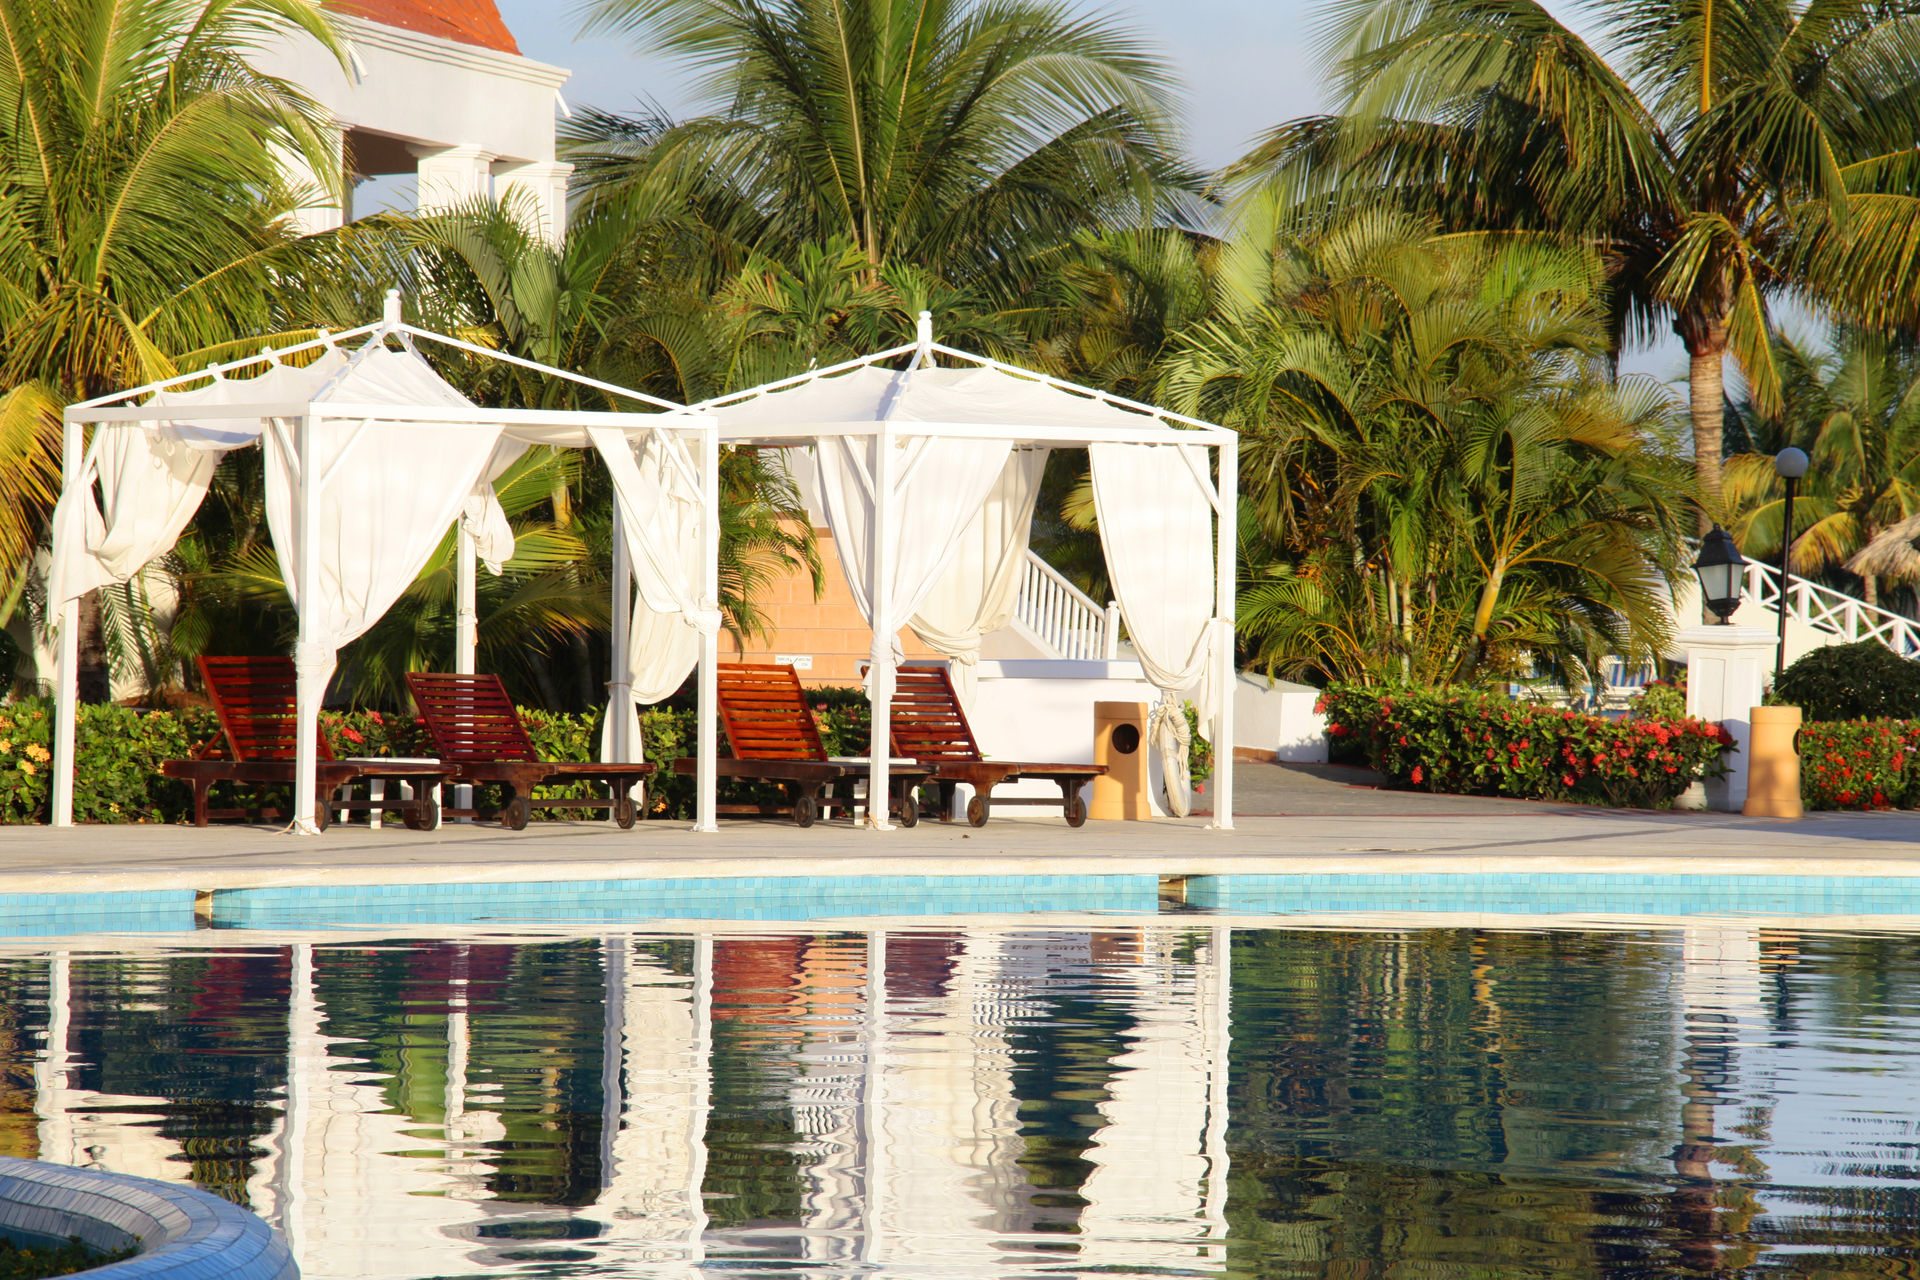 Hôtel Luxury Bahia Principe Runaway Bay 5* by Don Pablo Collection